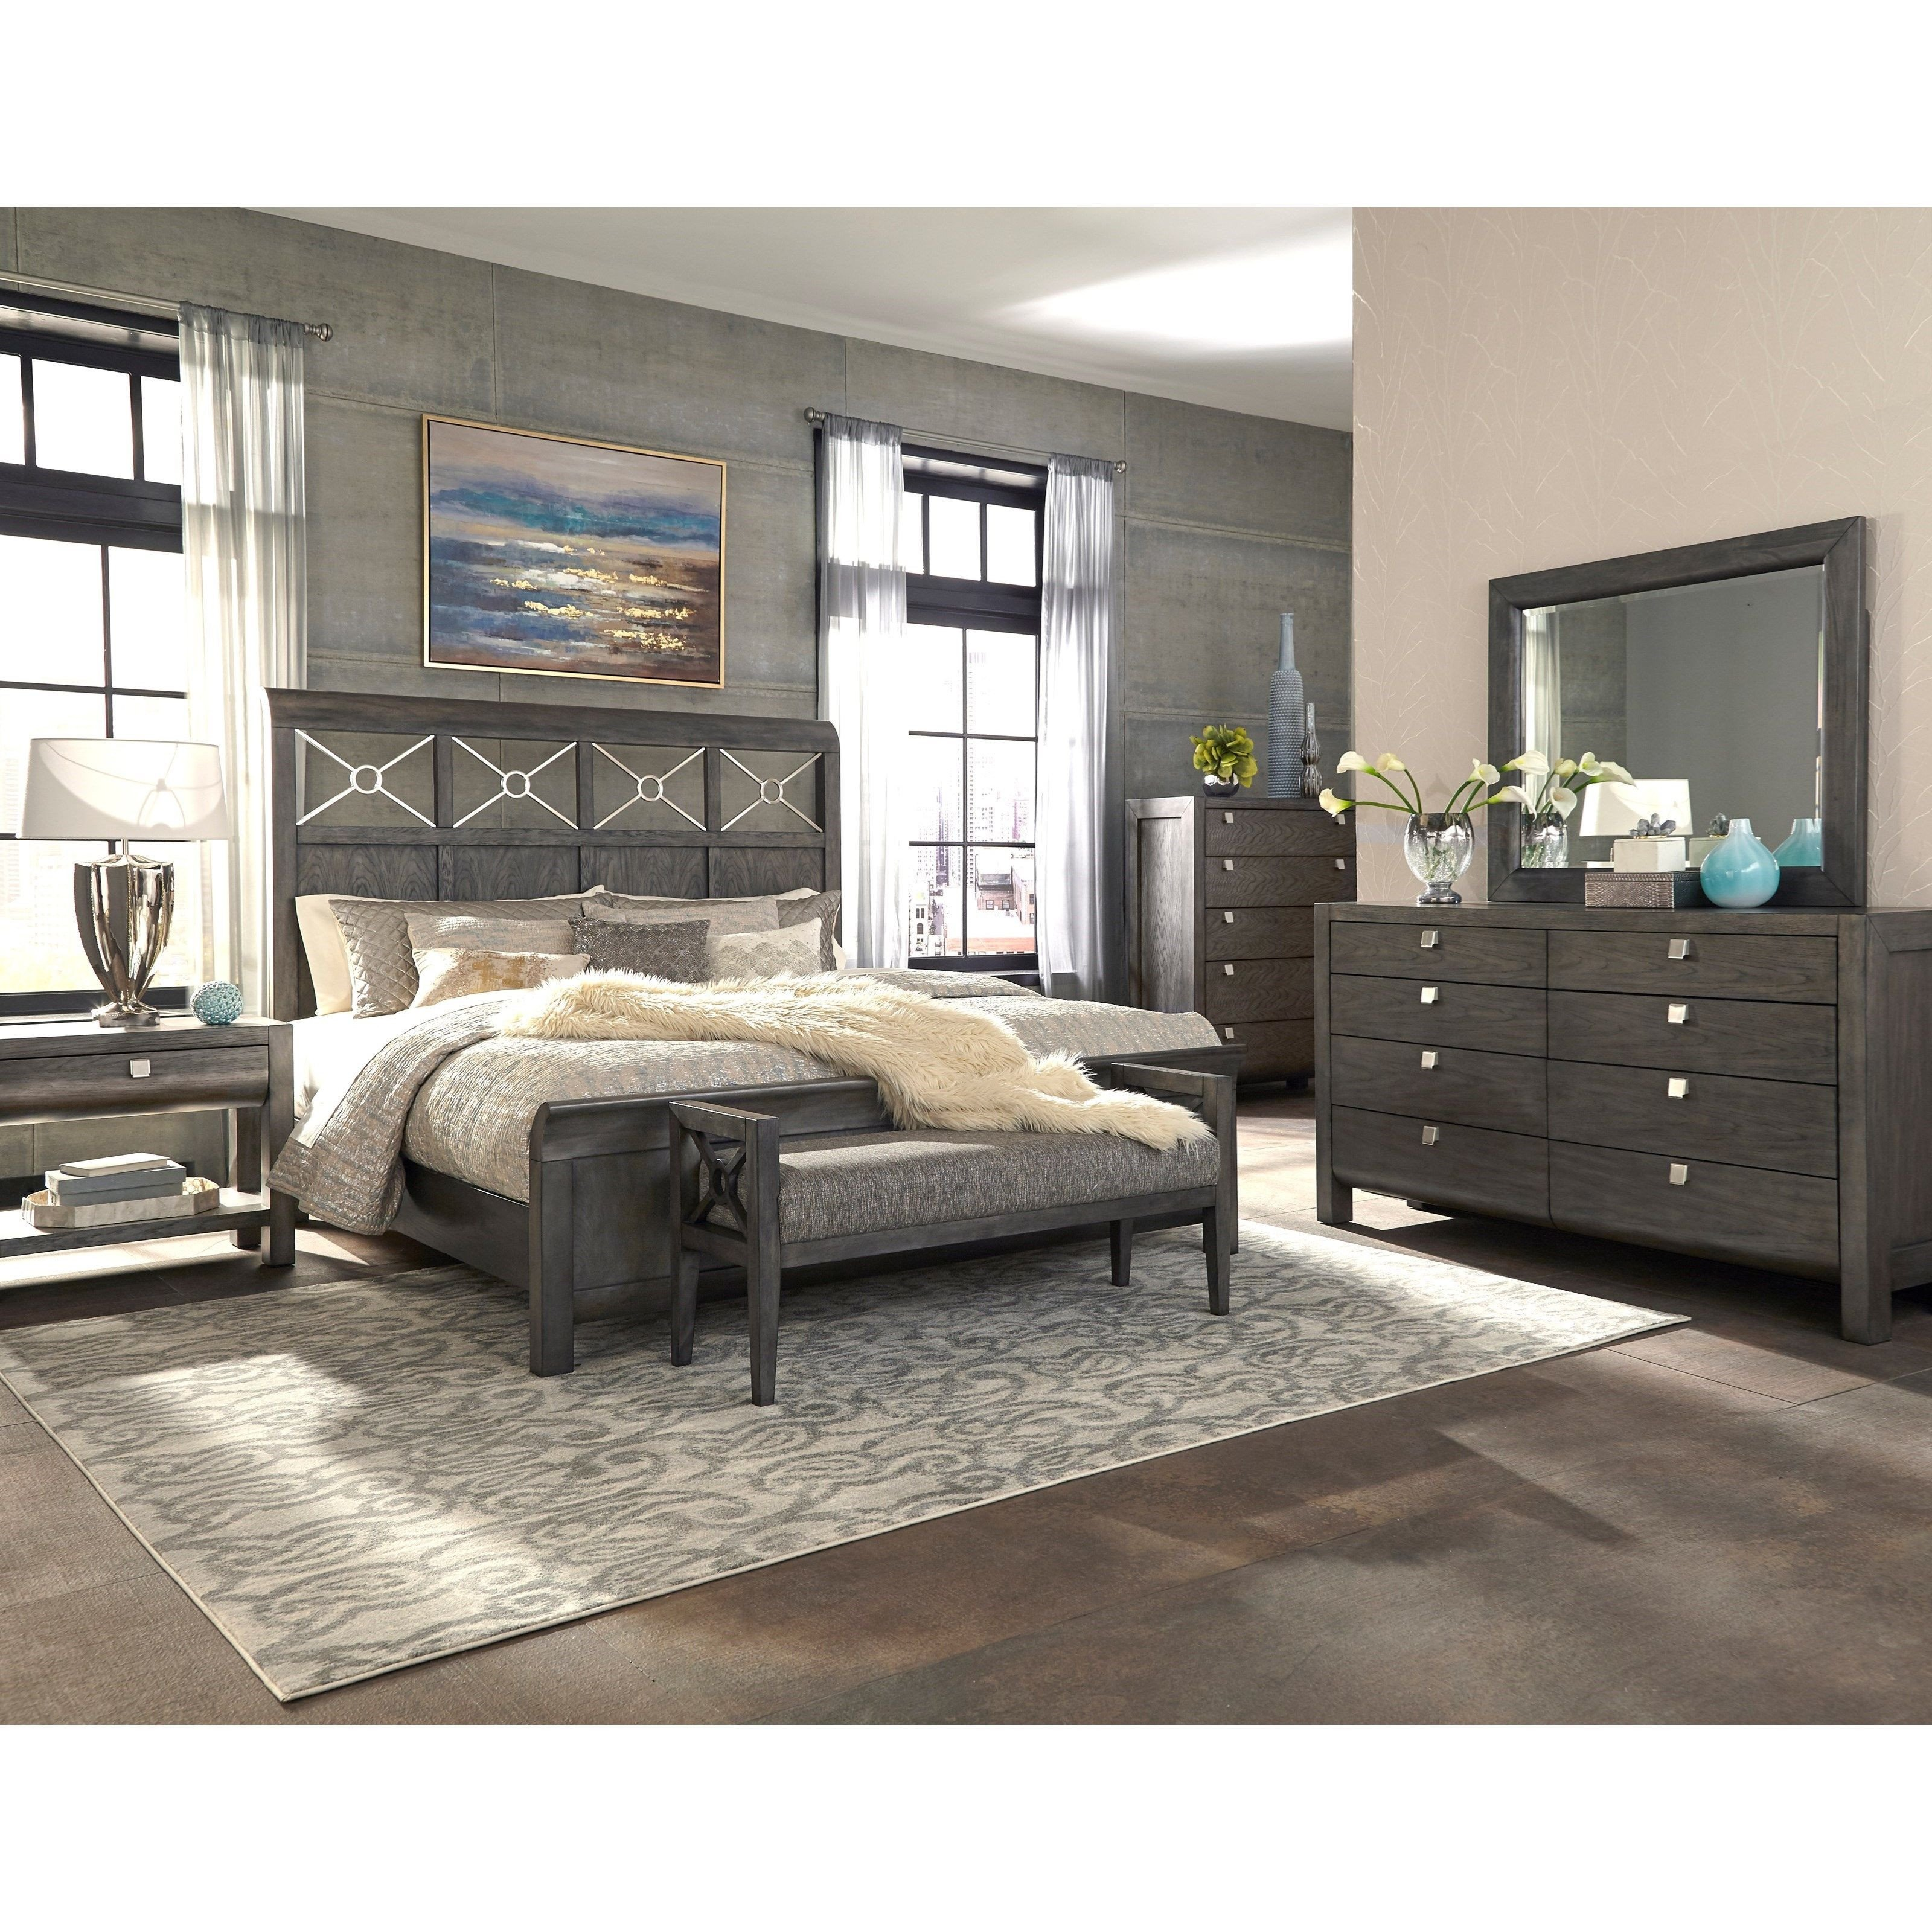 Queen Bedroom Furniture Set New Music City Queen Bed Plete by Trisha Yearwood Home